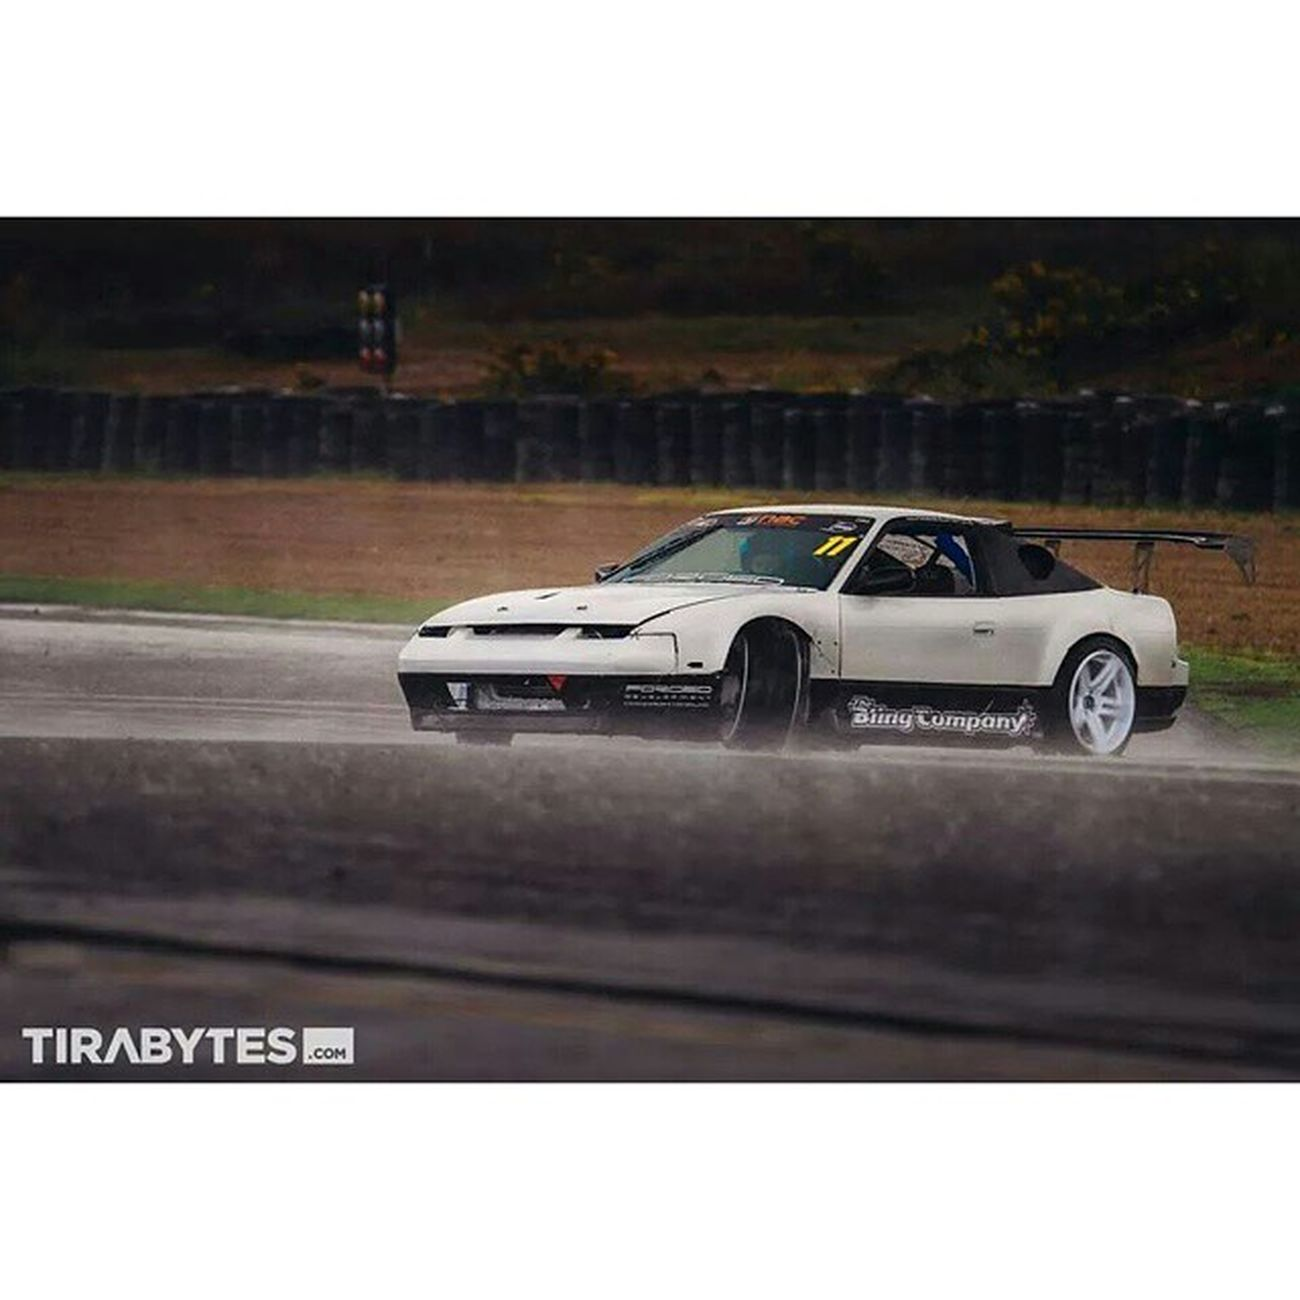 Schassis 180sx Nissan Datsun drift drifting d1nz silvia s13 superstreet carporn jdm stancenation fatlace illest stanceworks hellaflush follow and like @tirabytes